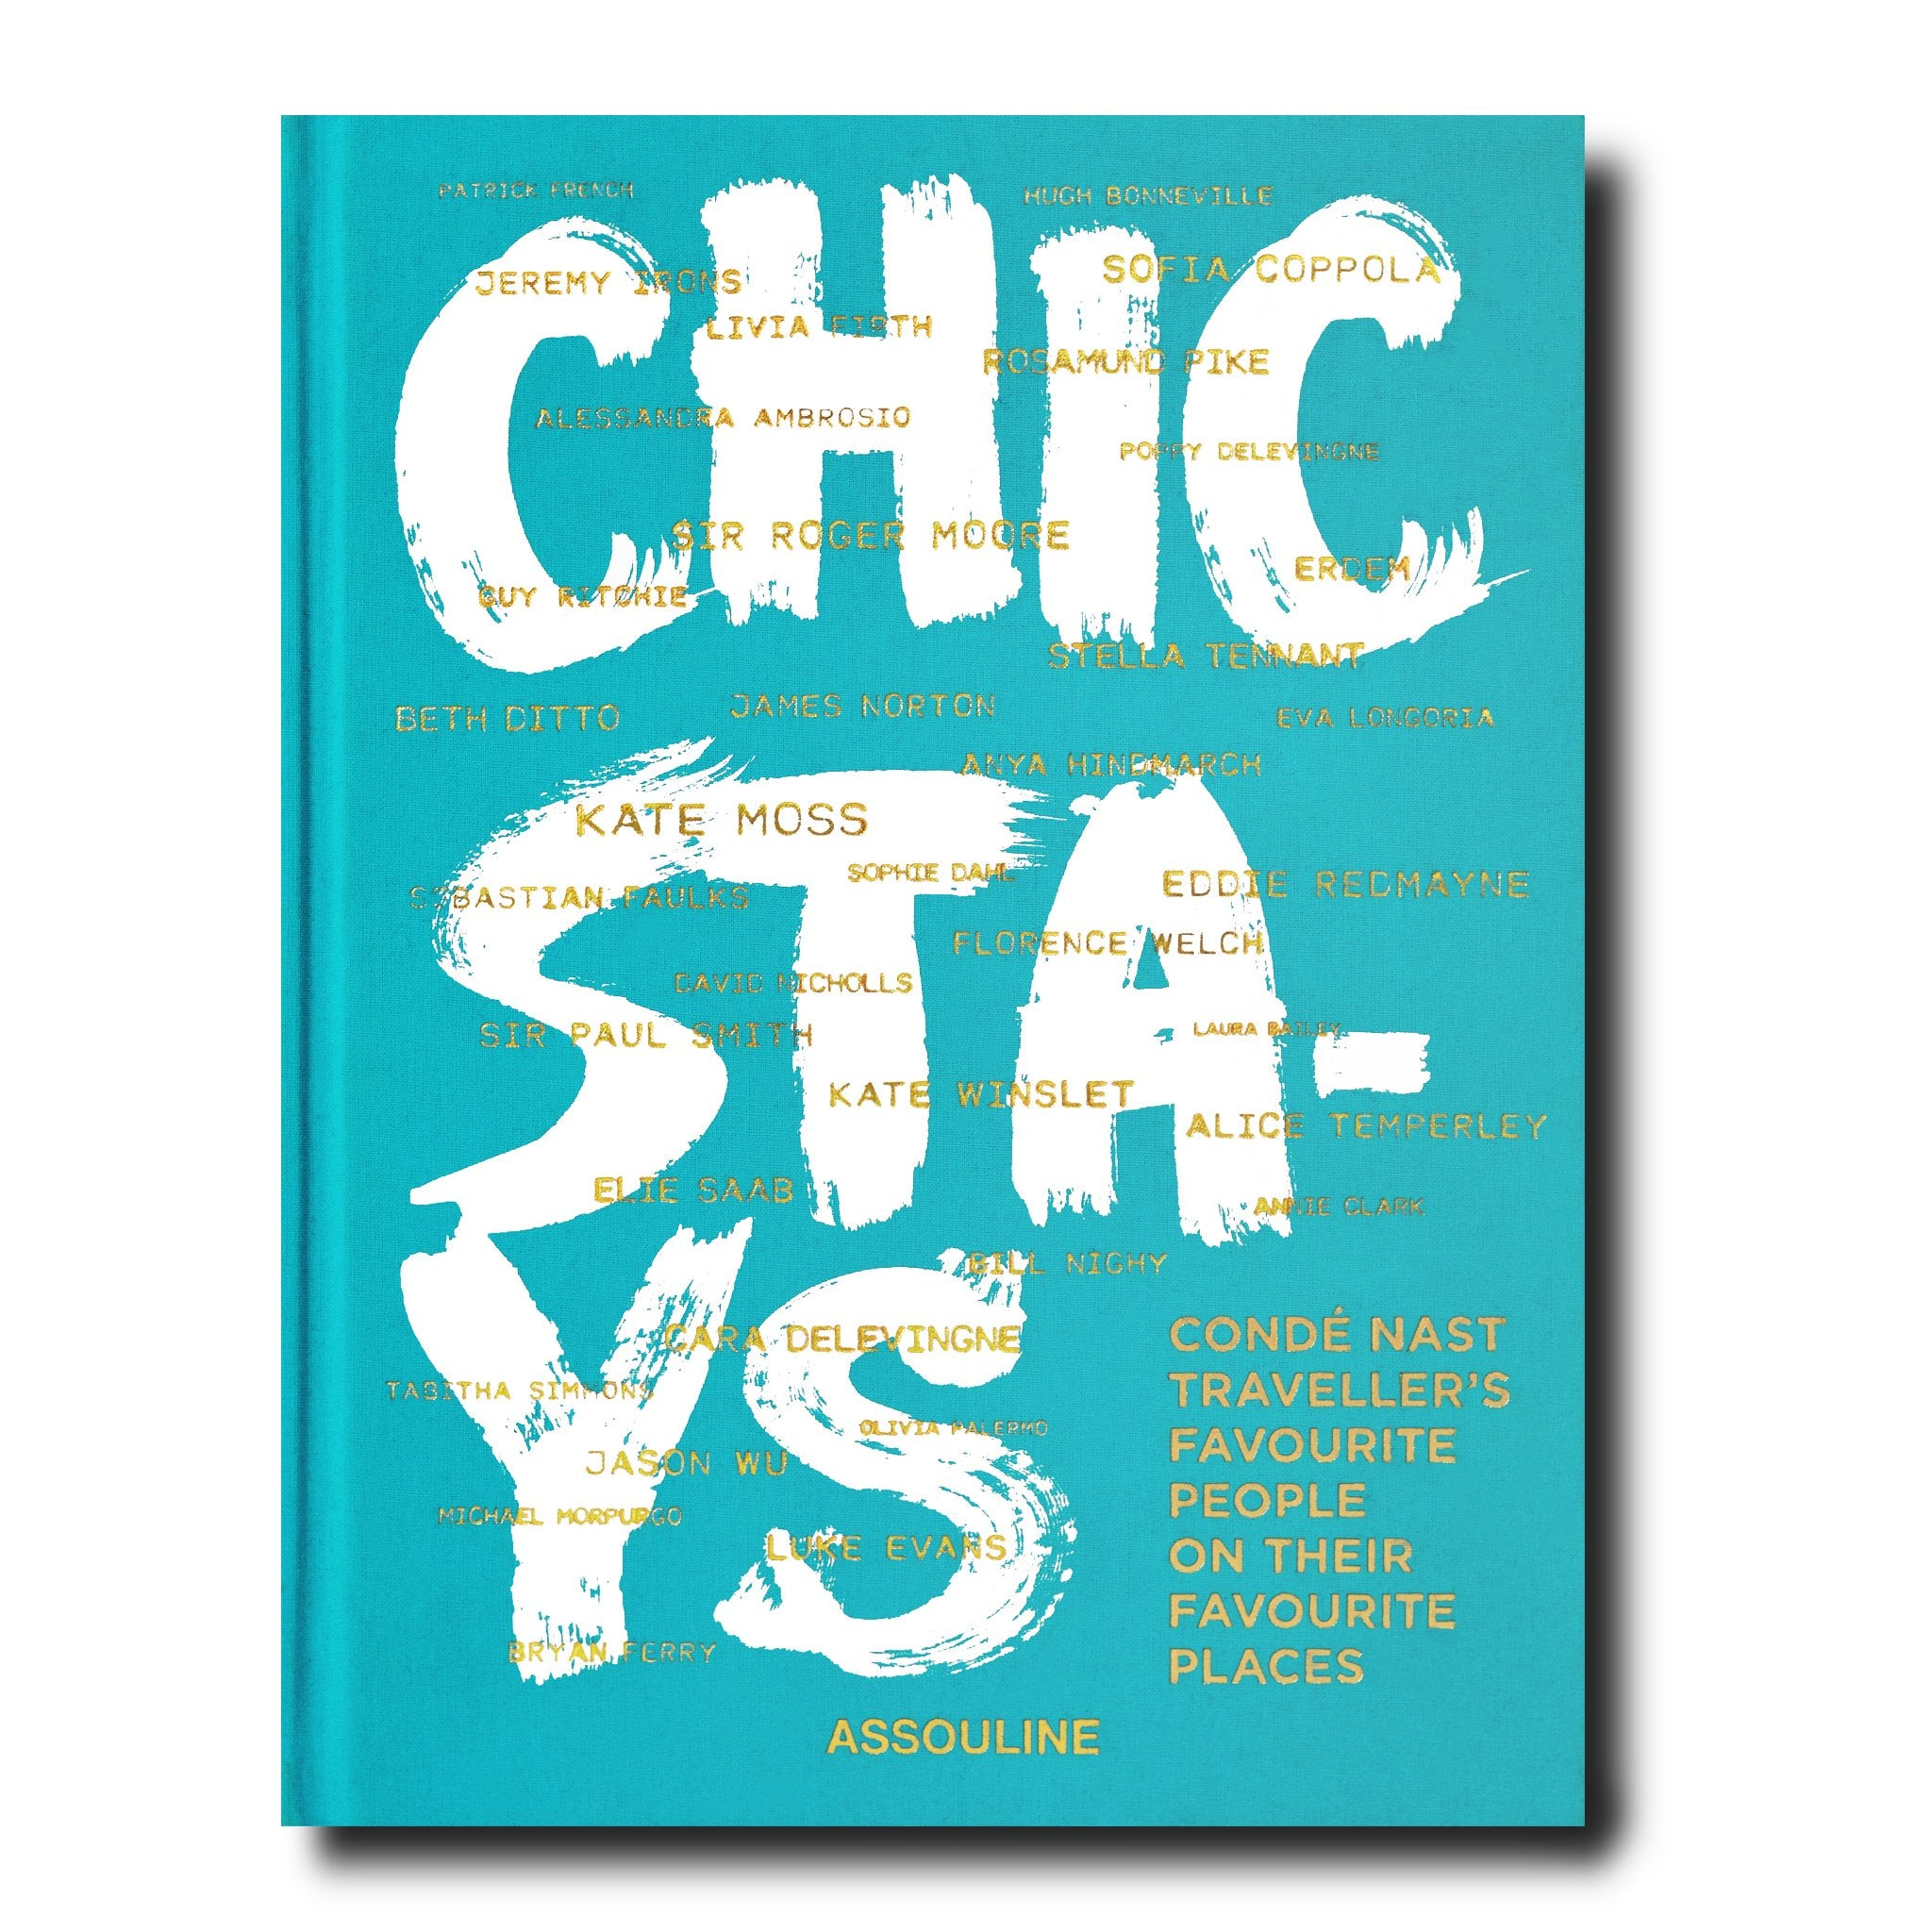 971d36368 Chic Stays book by Condé Nast Traveller